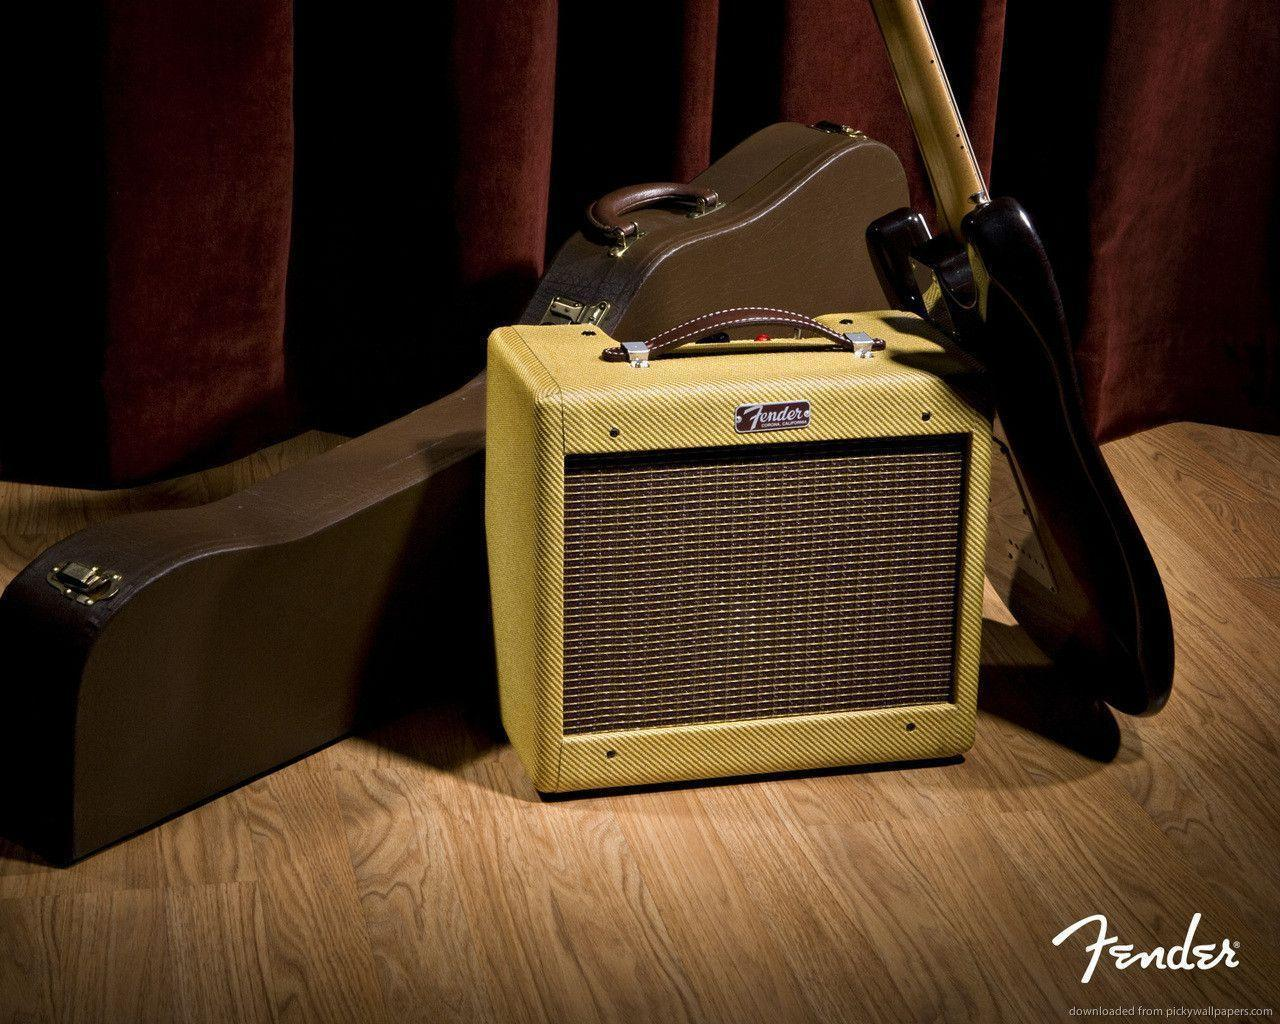 Fender Wallpaper #3333 | picttop.